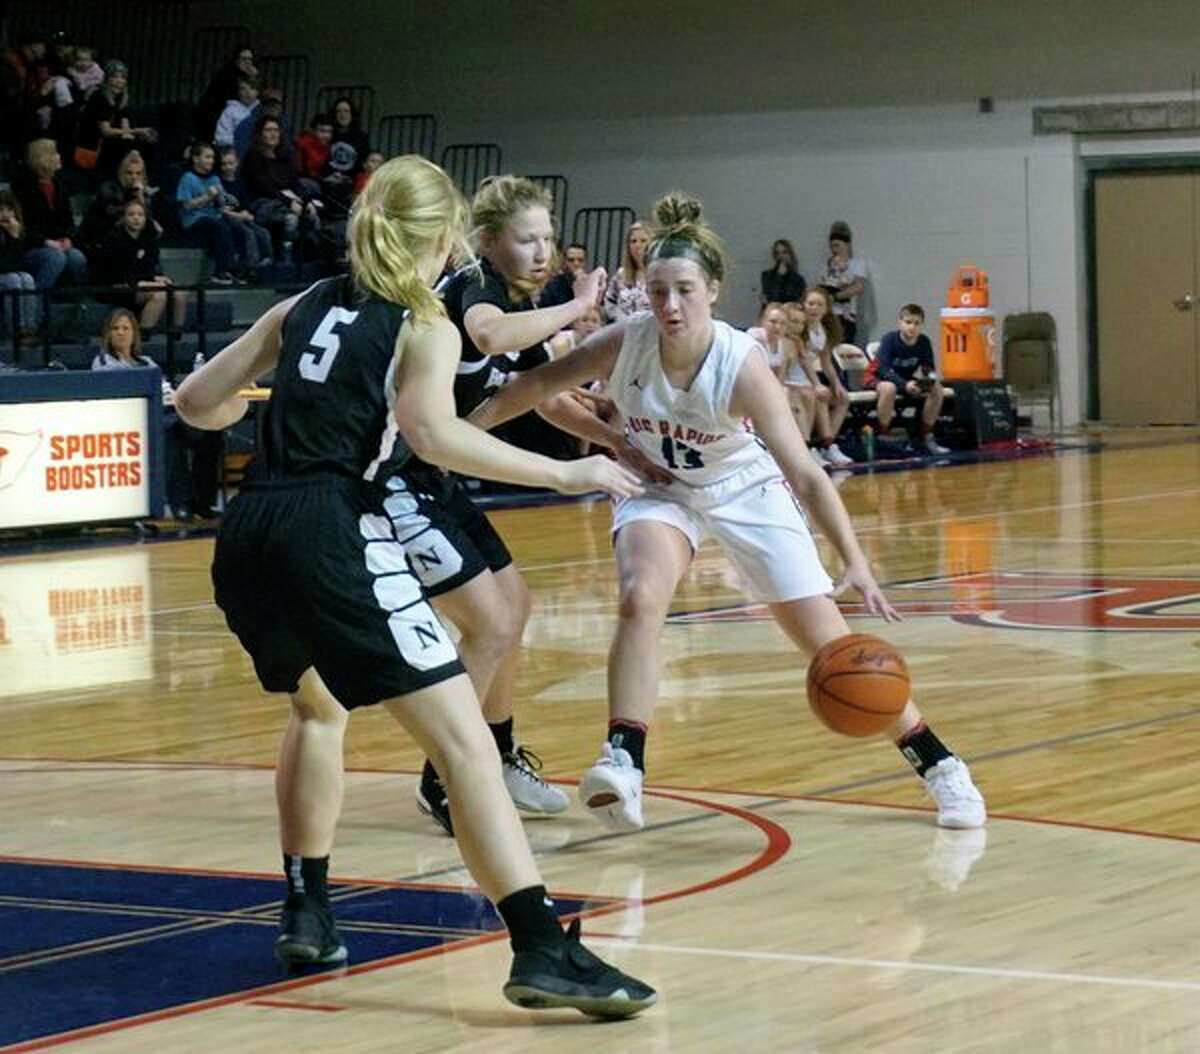 Rylie Haist of Big Rapids dribbles into the Newaygo defense during BR's 45-39 home win on Friday night. (Pioneer photo/Joe Judd)